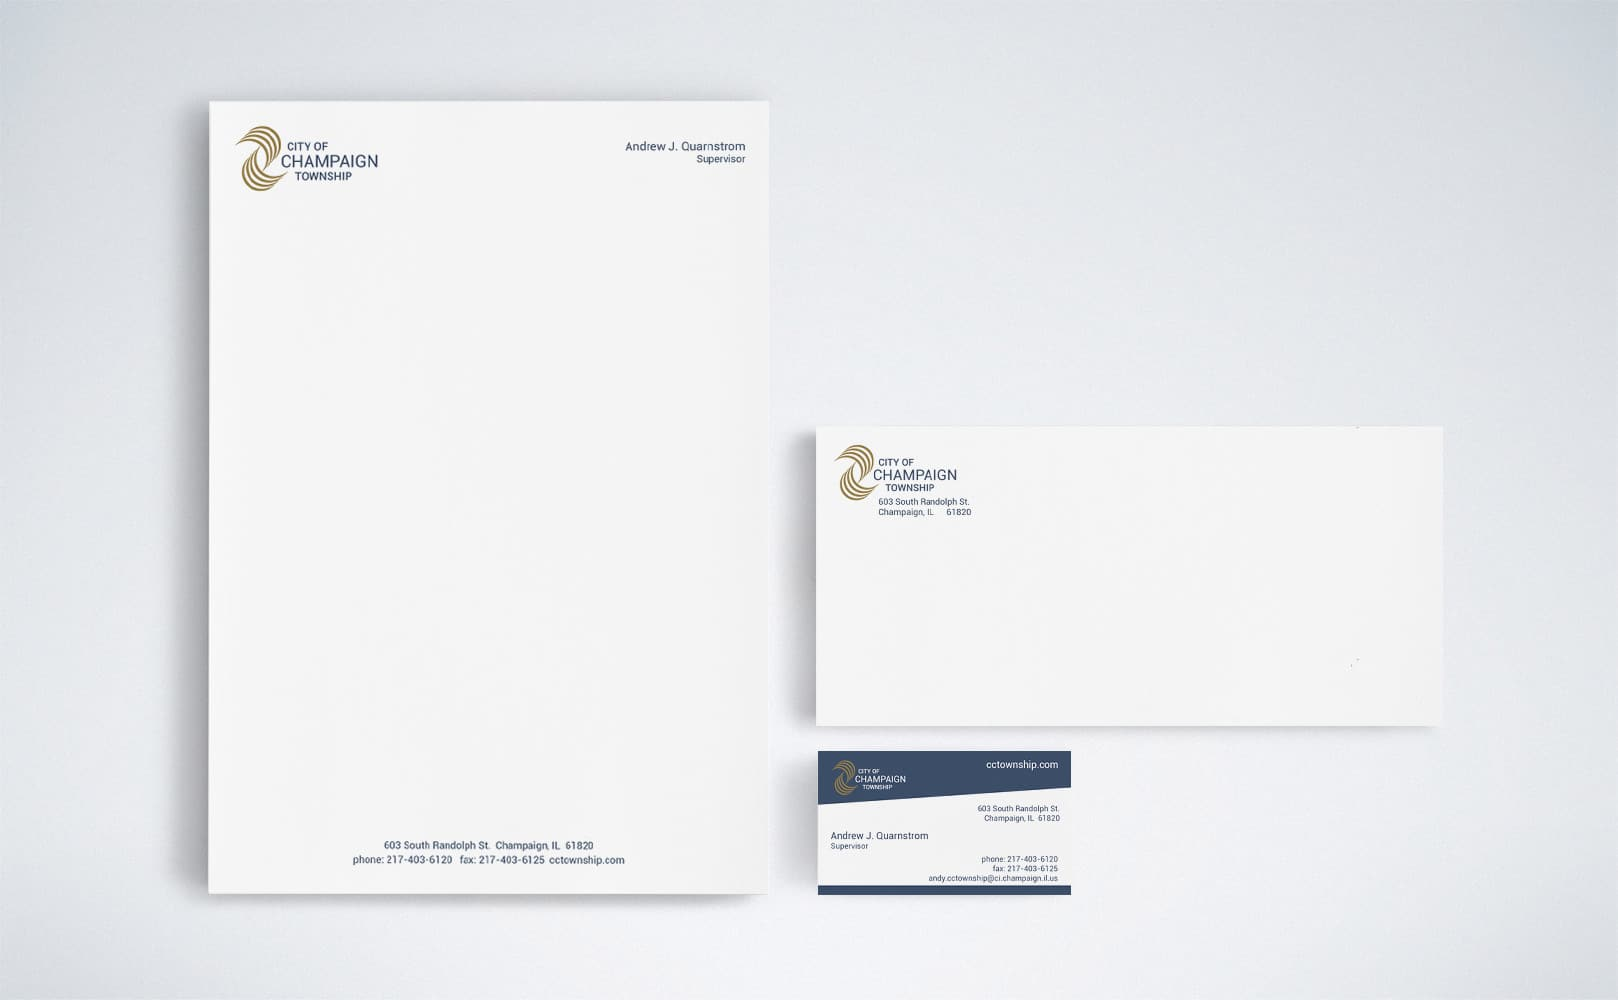 City of Champaign Township Stationery